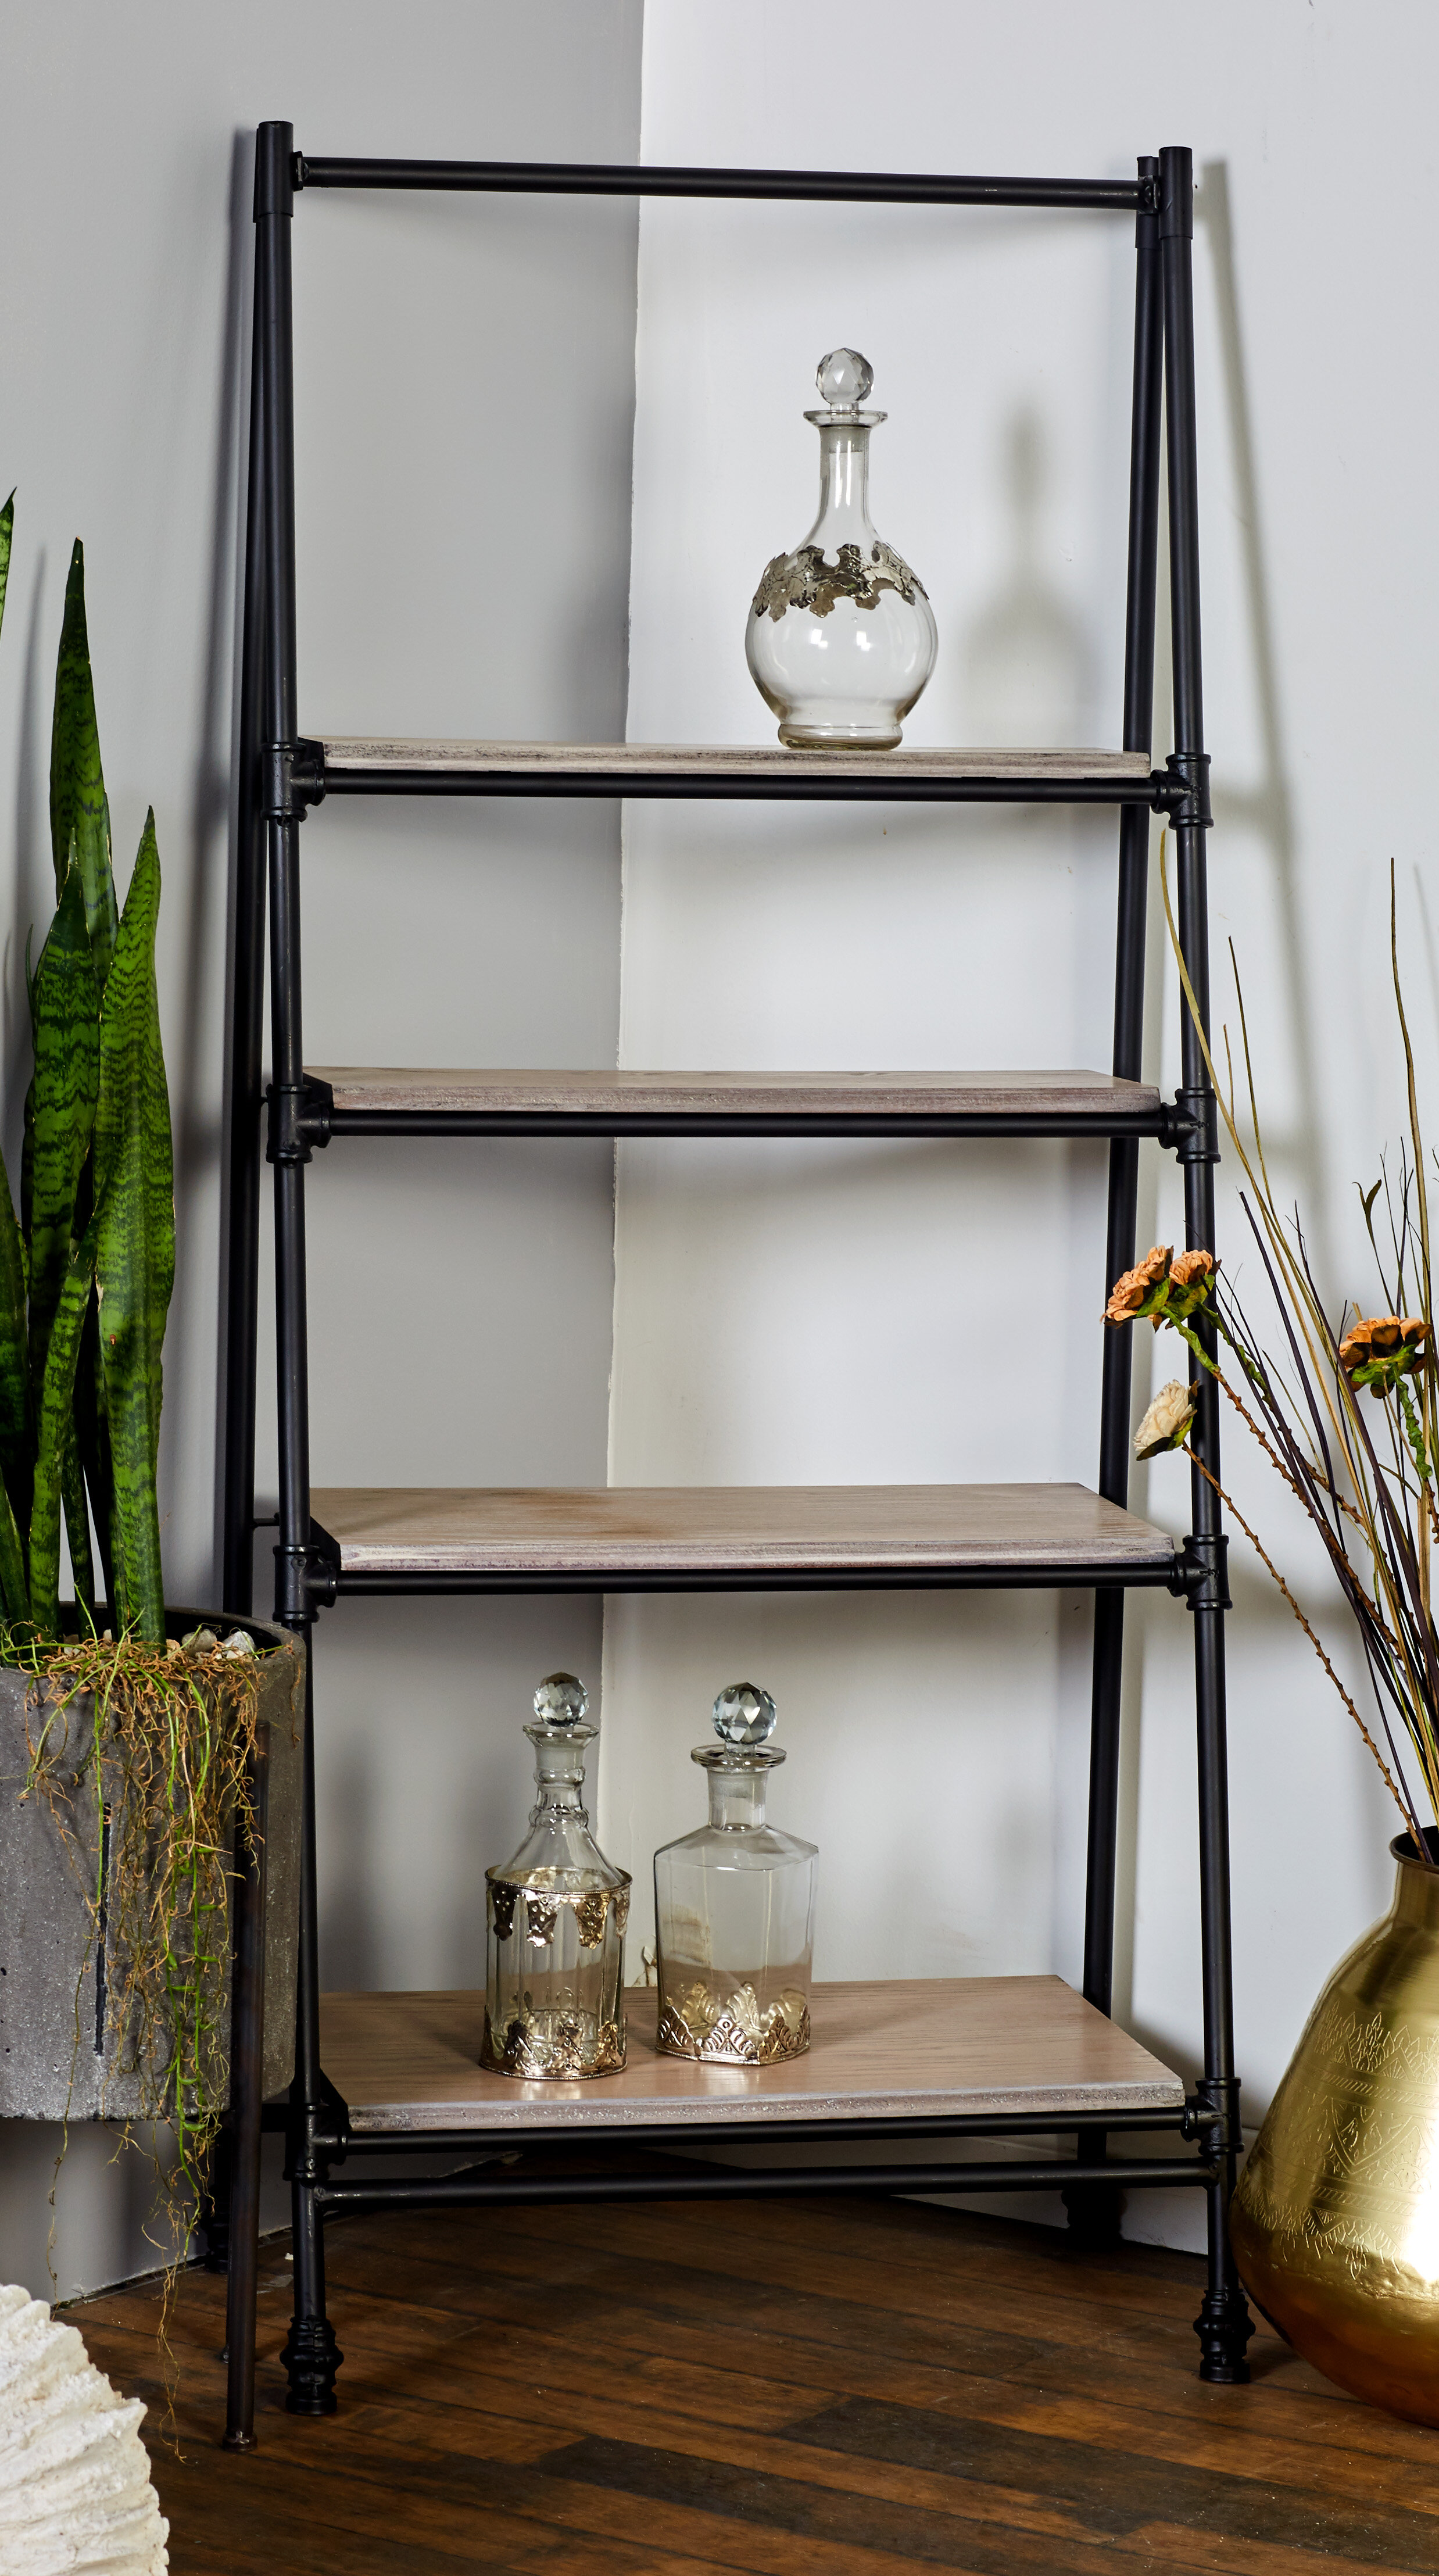 storage organization custom shelf bookshelf leaning in inspiration corner ideas tips living shade lamps bookcase with decors design and for ladder room picturesque demand simple added